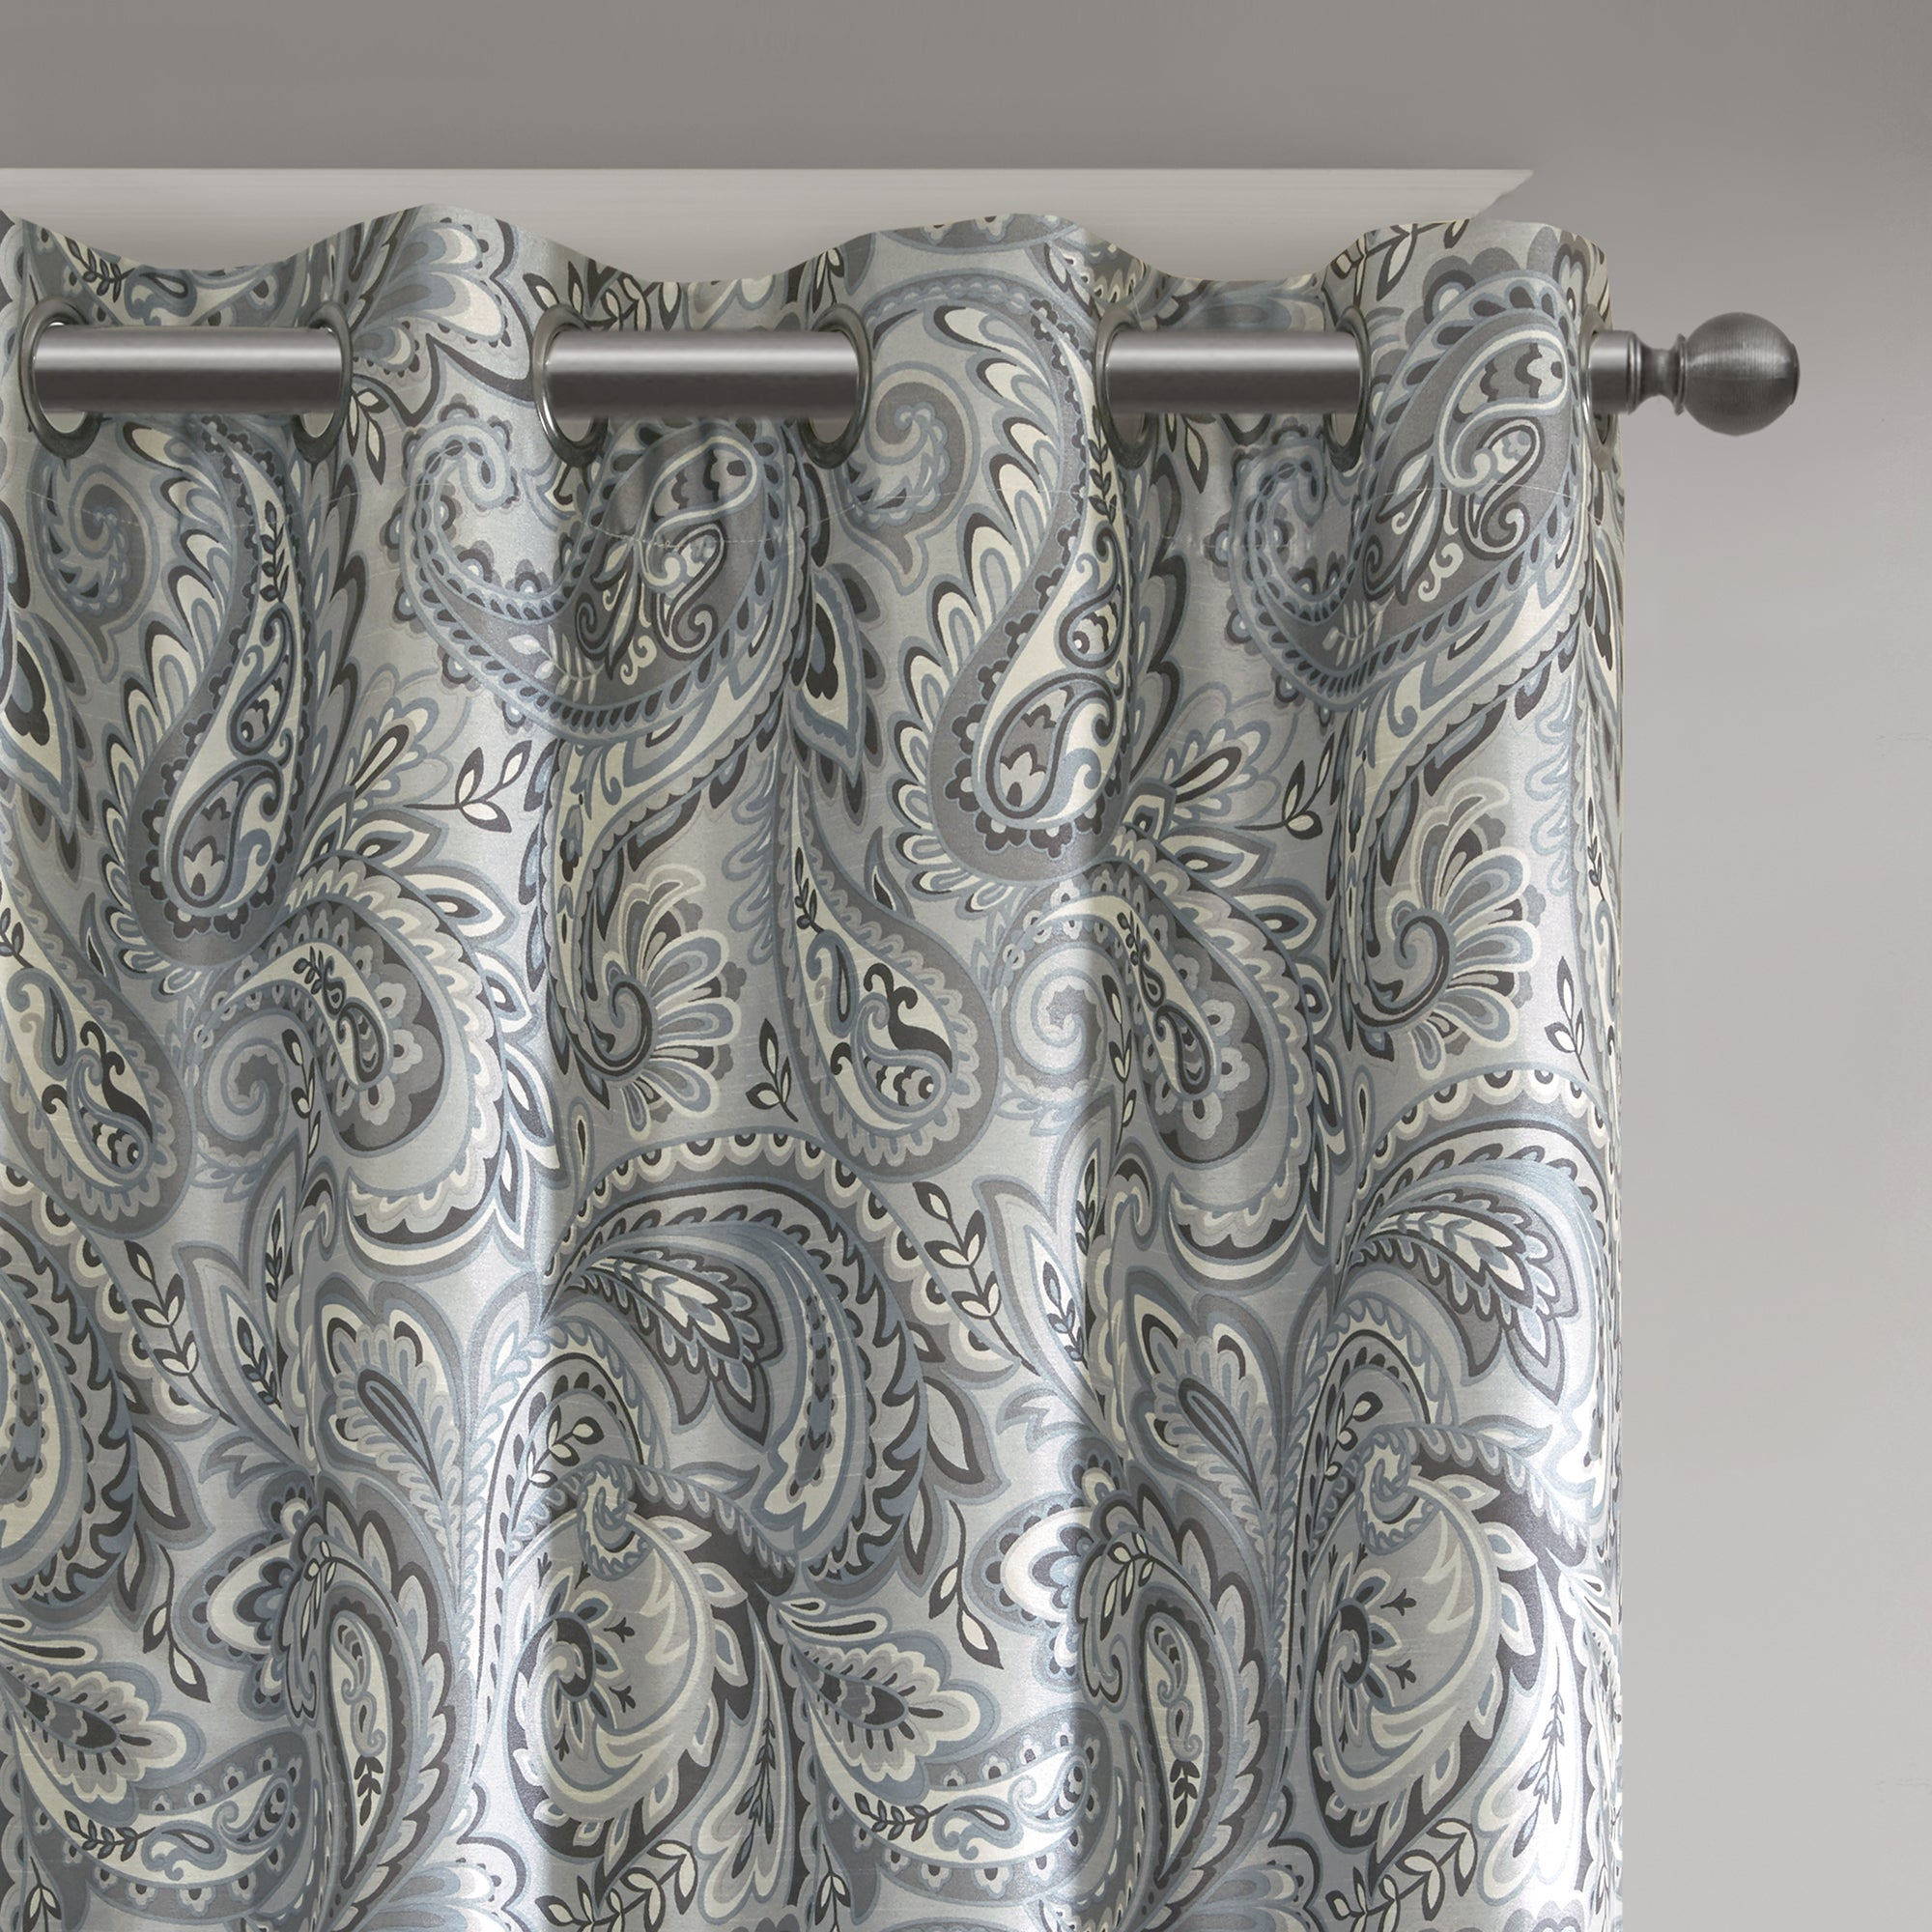 Sunsmart Dahlia Paisley Printed Total Blackout Curtain Panel  Free